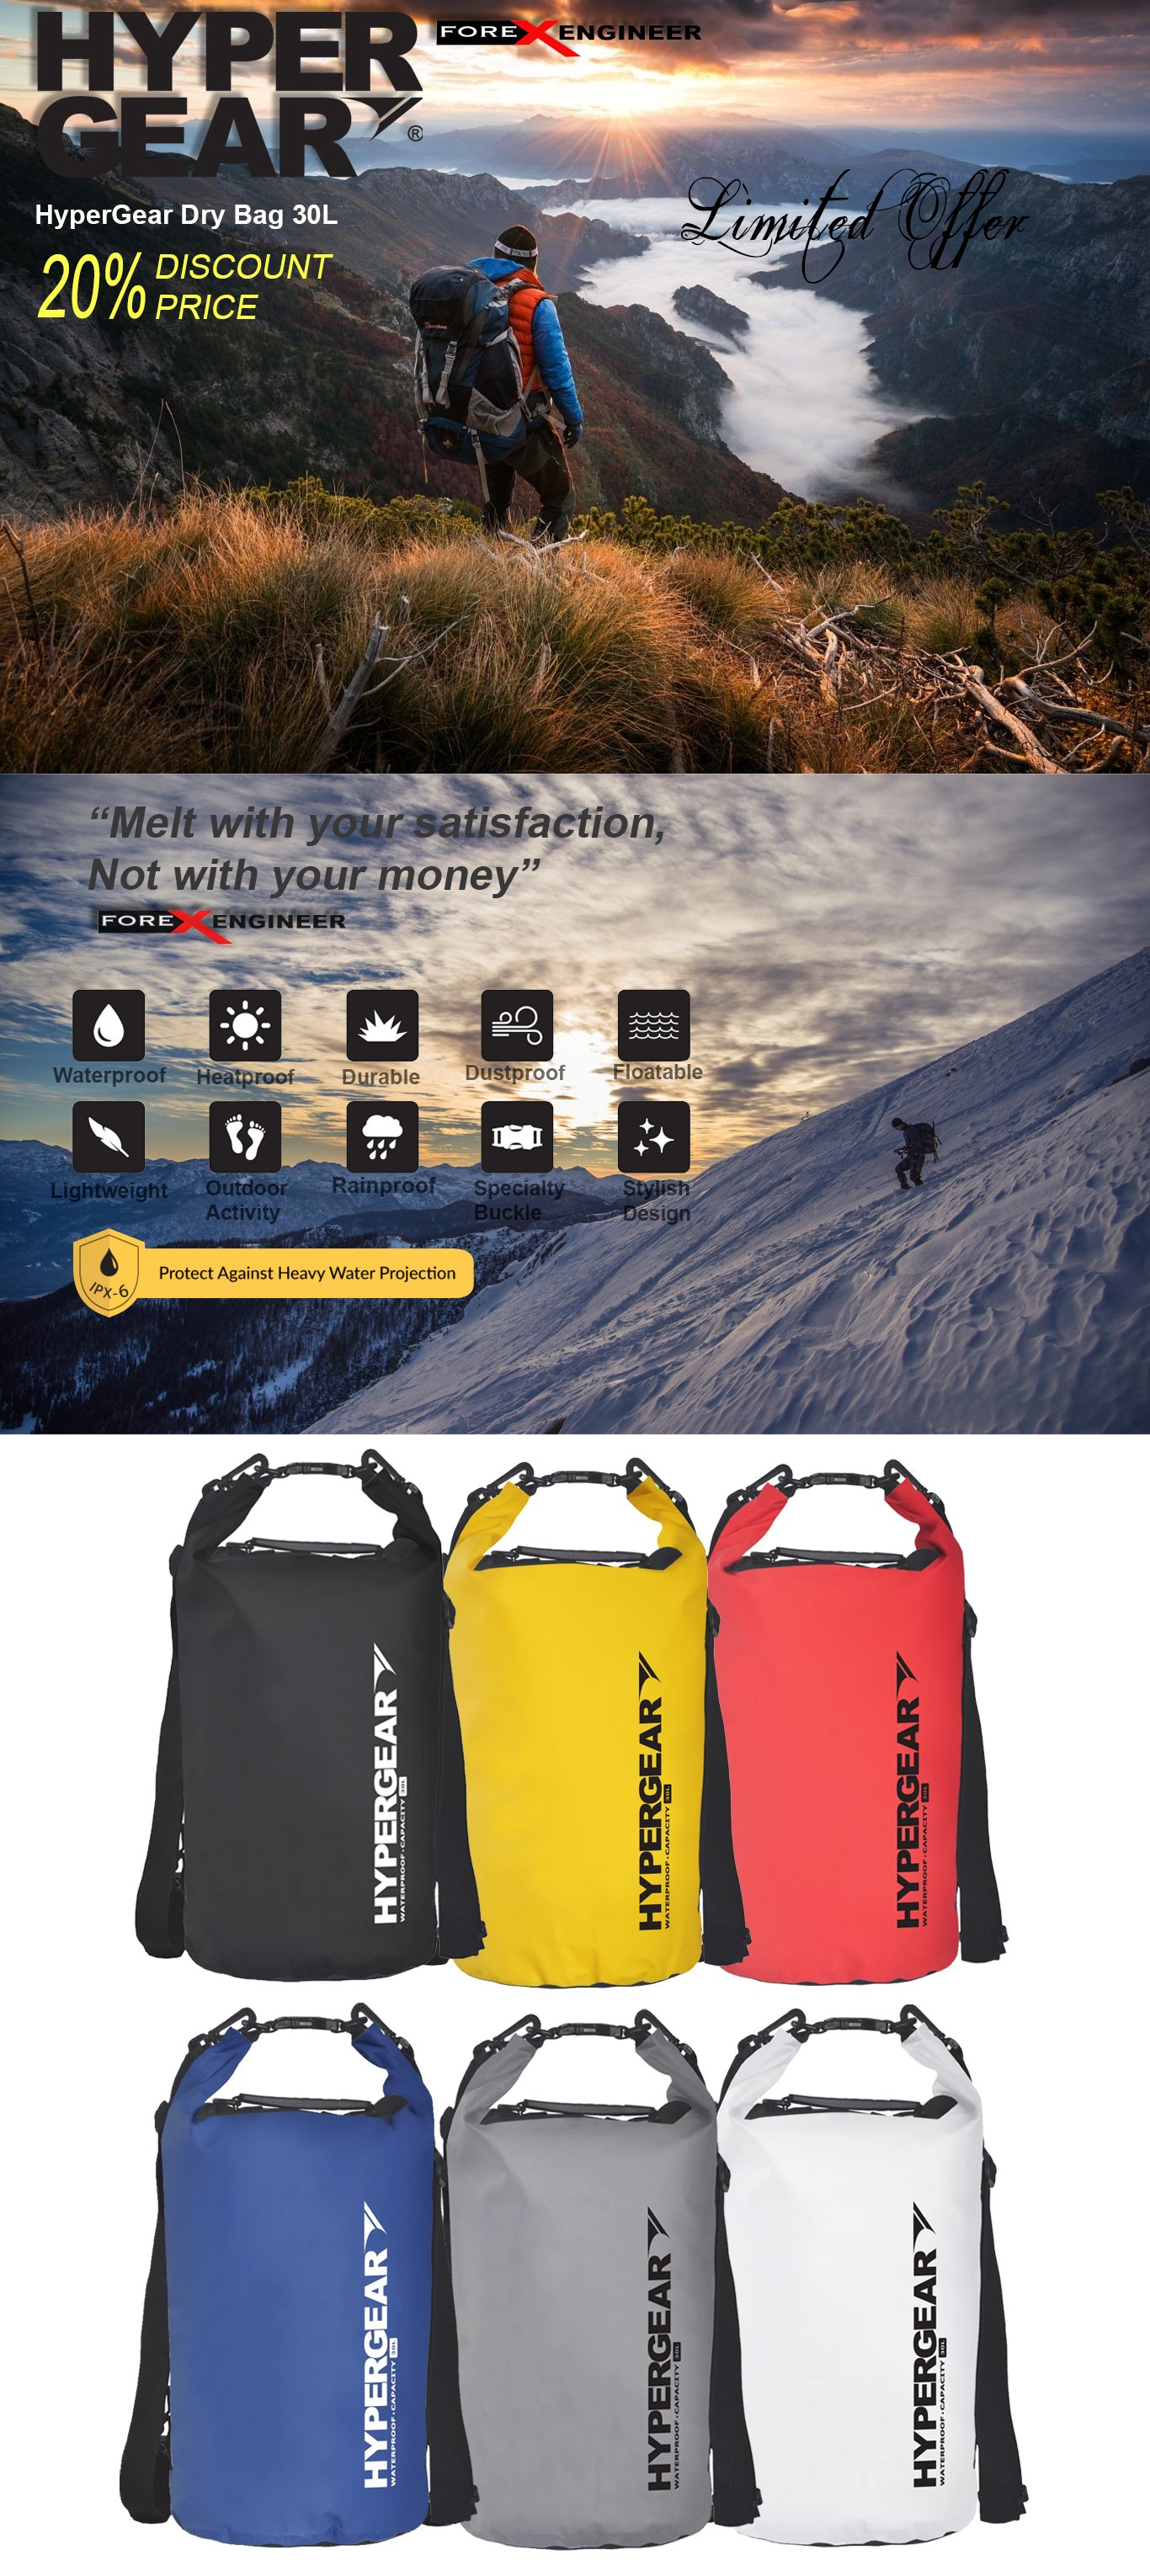 02-fx-hypergear-dry-bag-30l-free-2l-bag-forexengineer-authorised-retailer